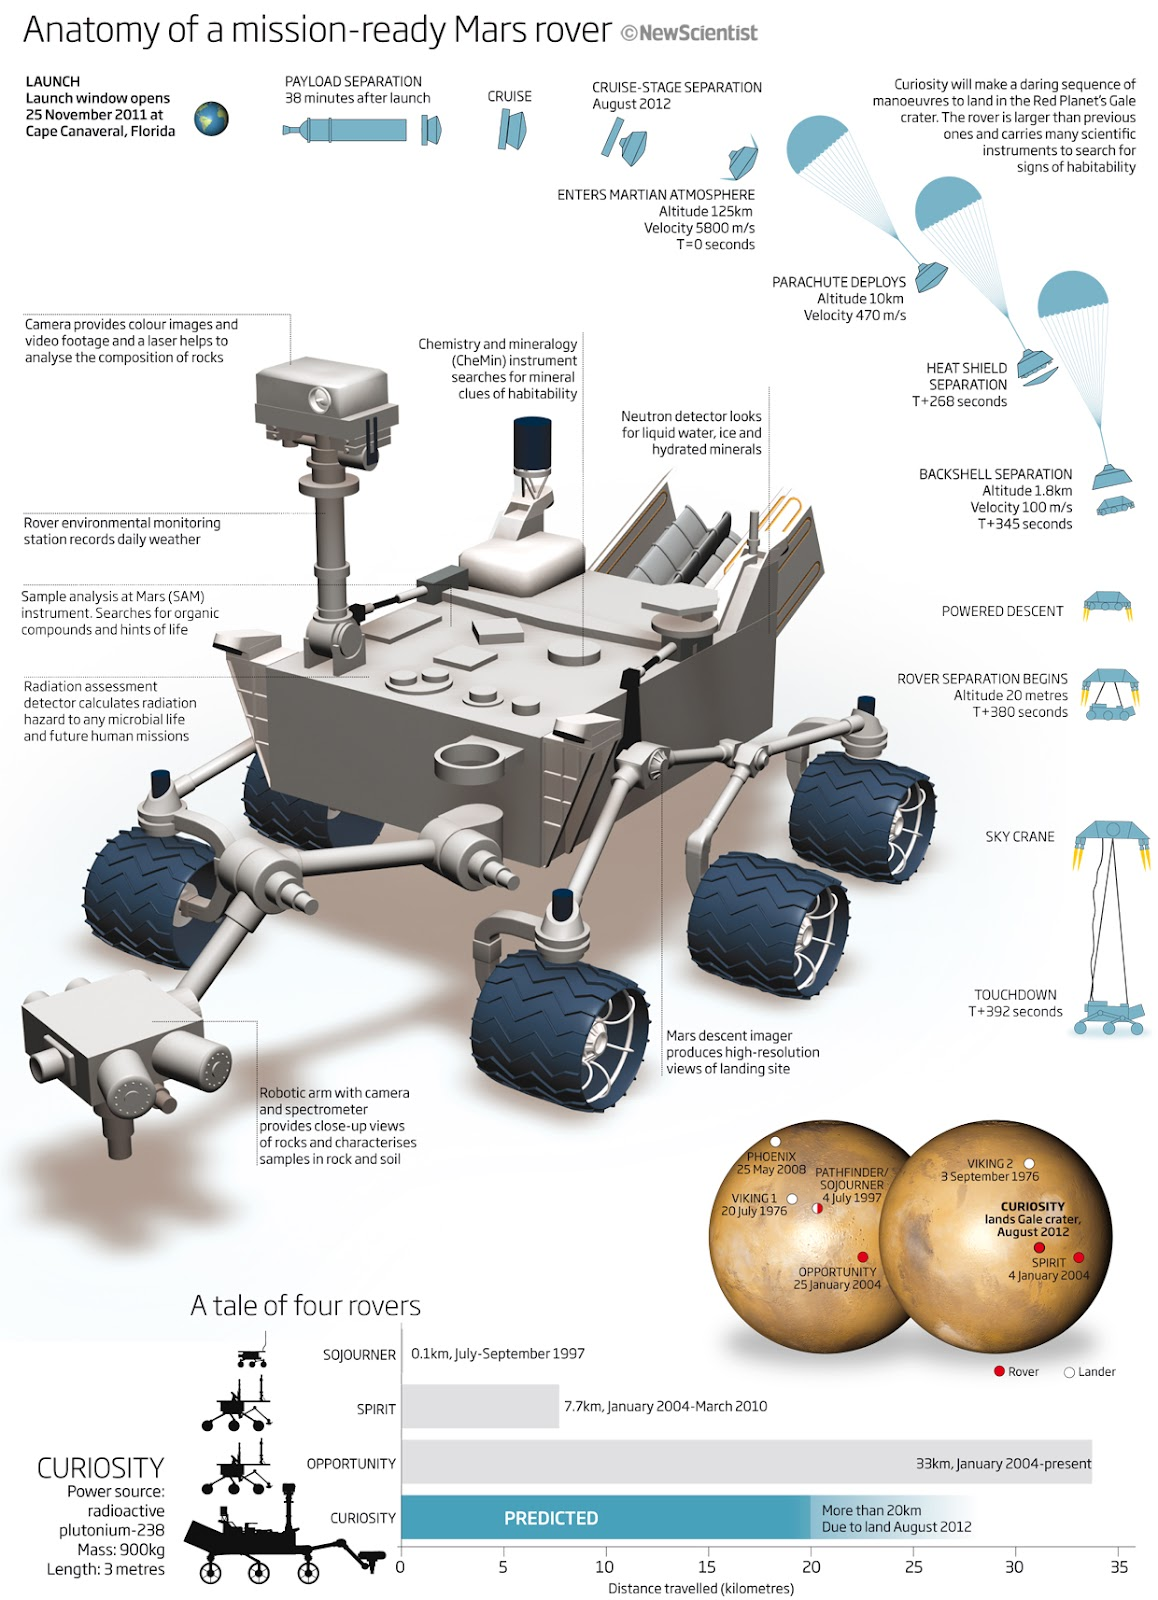 the martian ice and water analysis mission